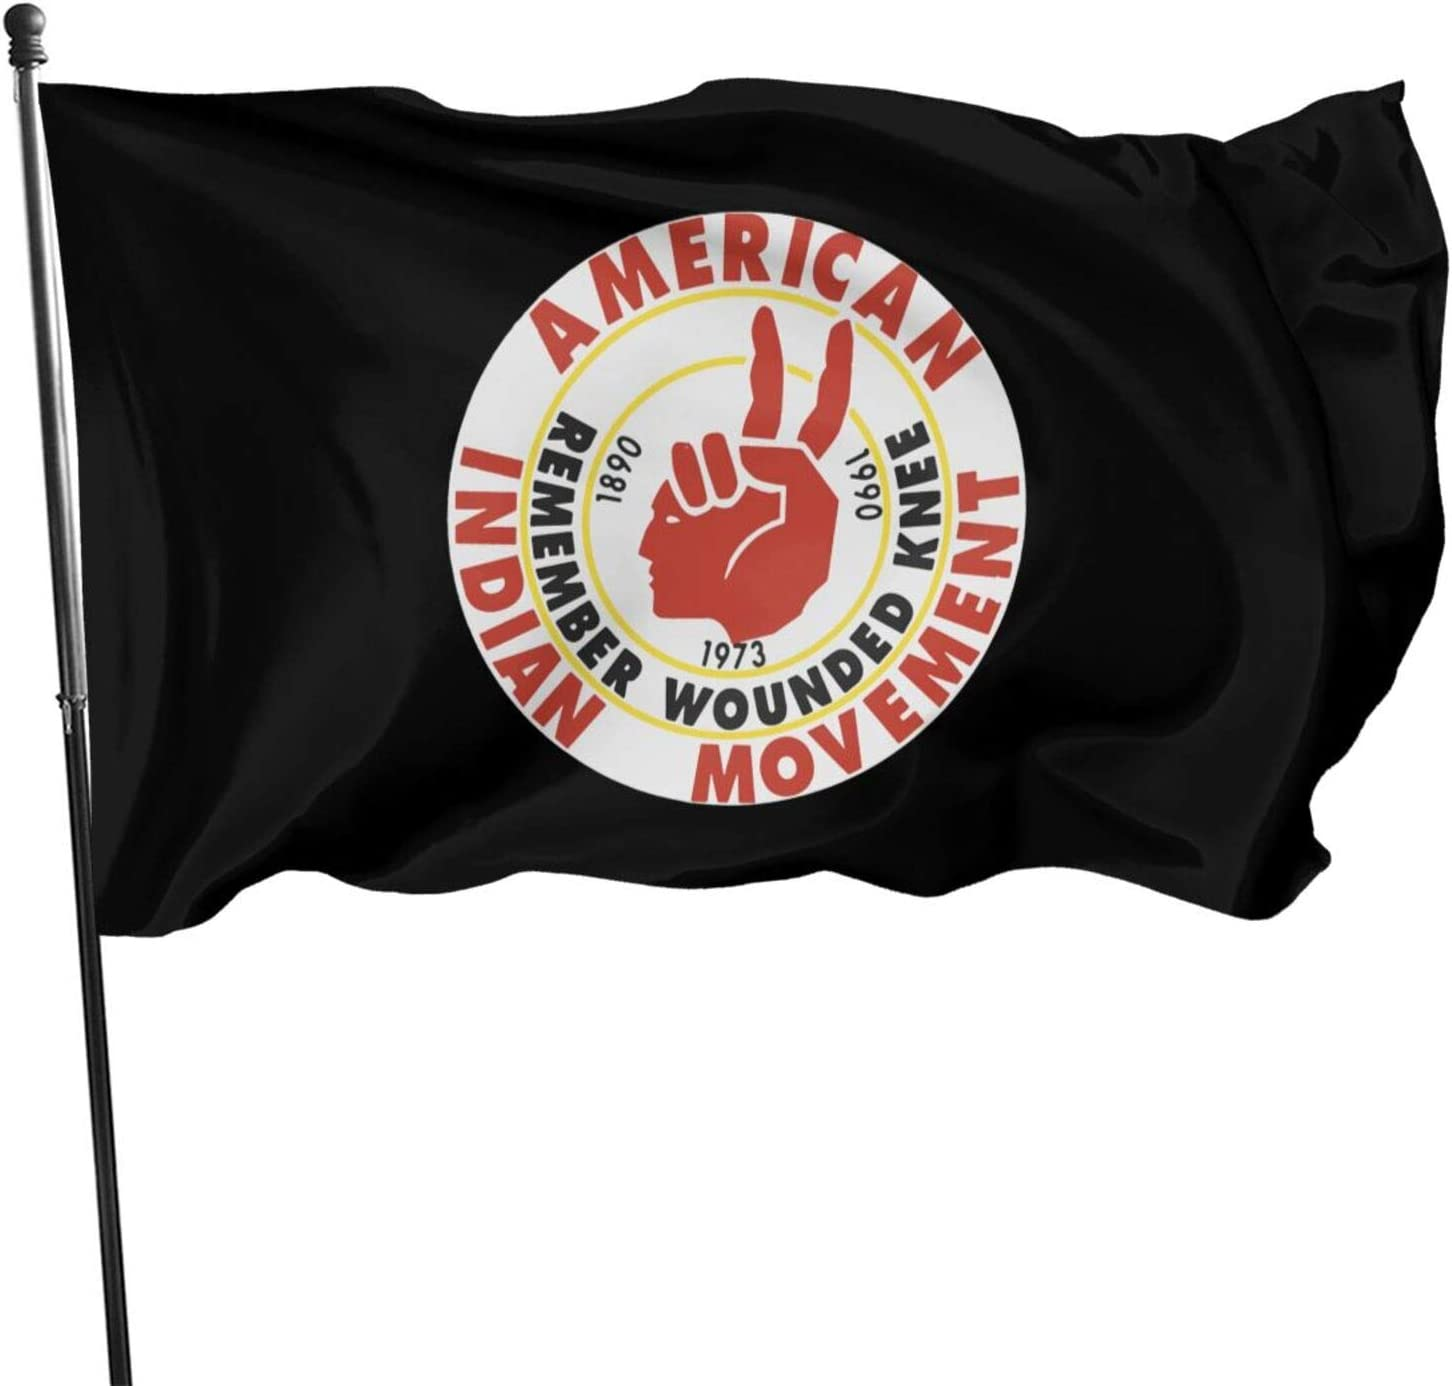 American Indian Movement Flag Indoors Outdoors Home Flag Uv Fade Resistant Garden Flag 3x5 Feet Banner